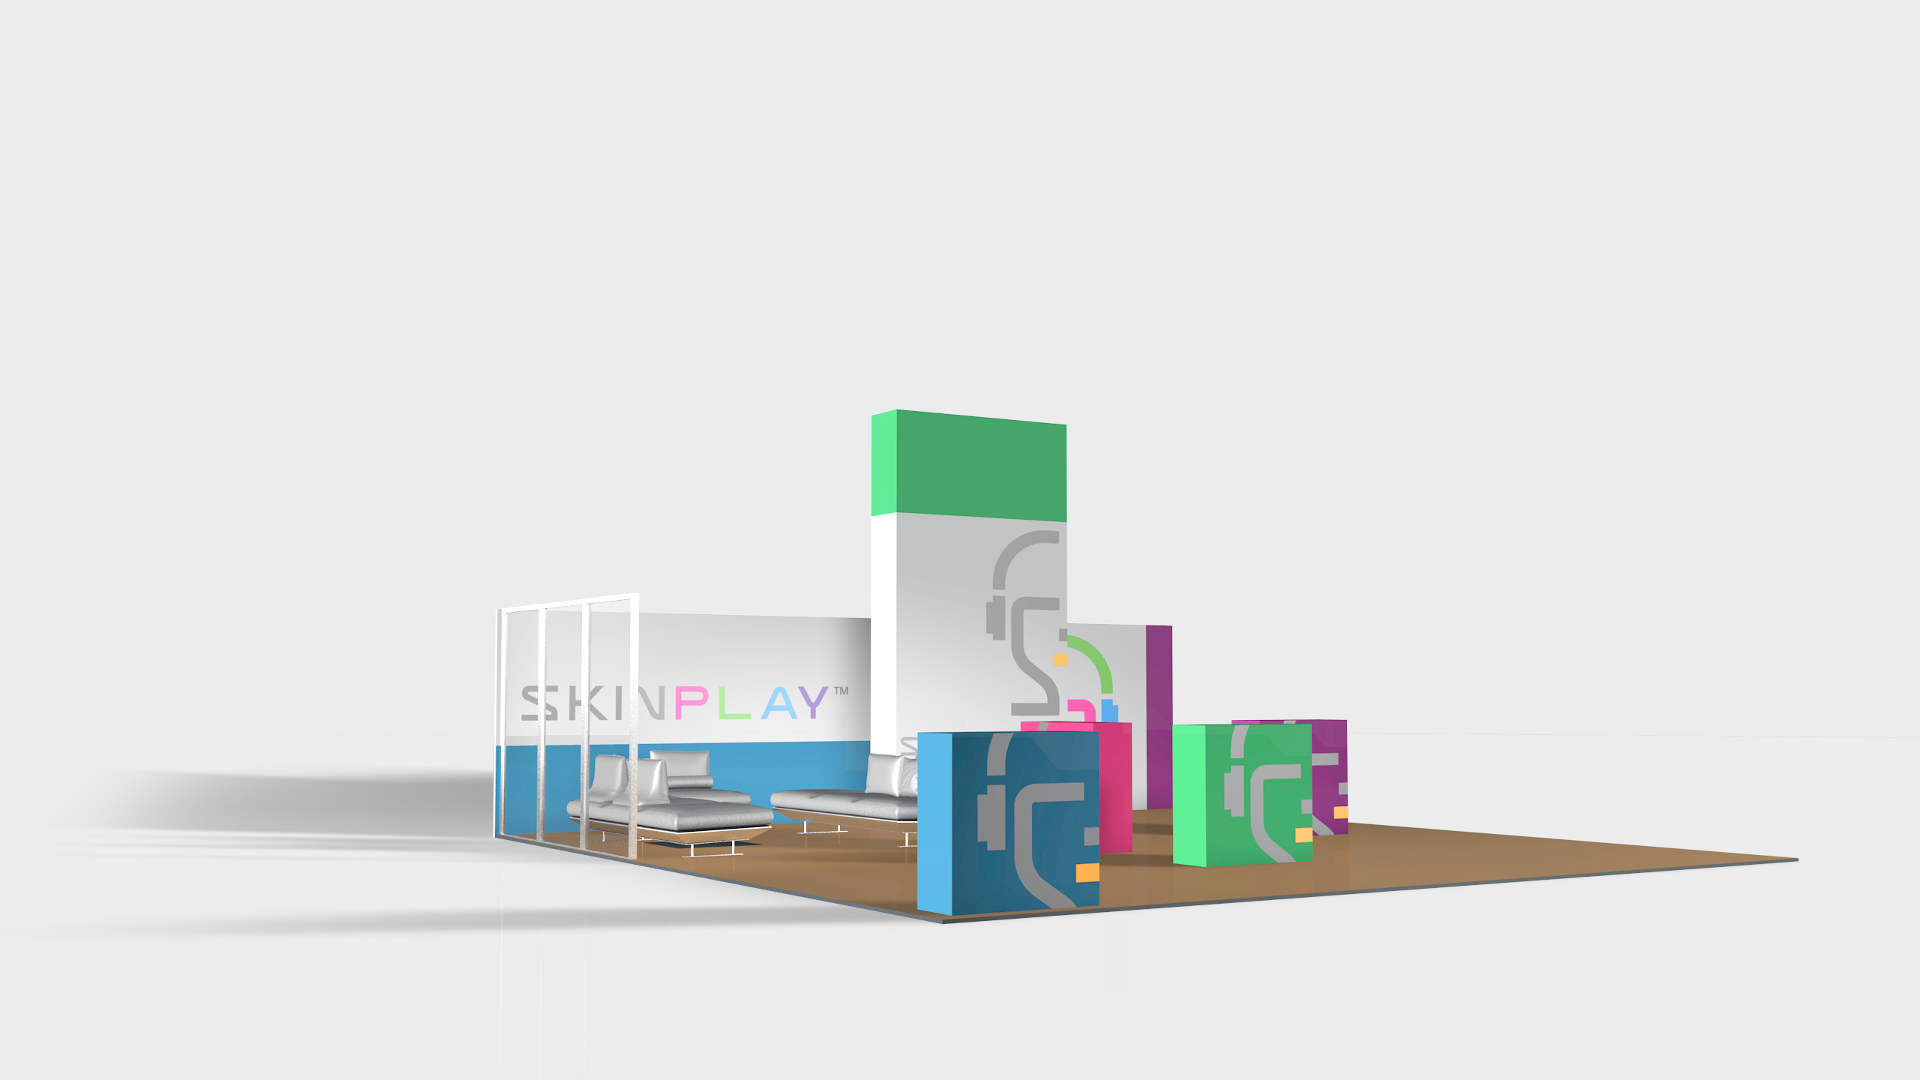 SKIN P L A Y Pop-up Booth